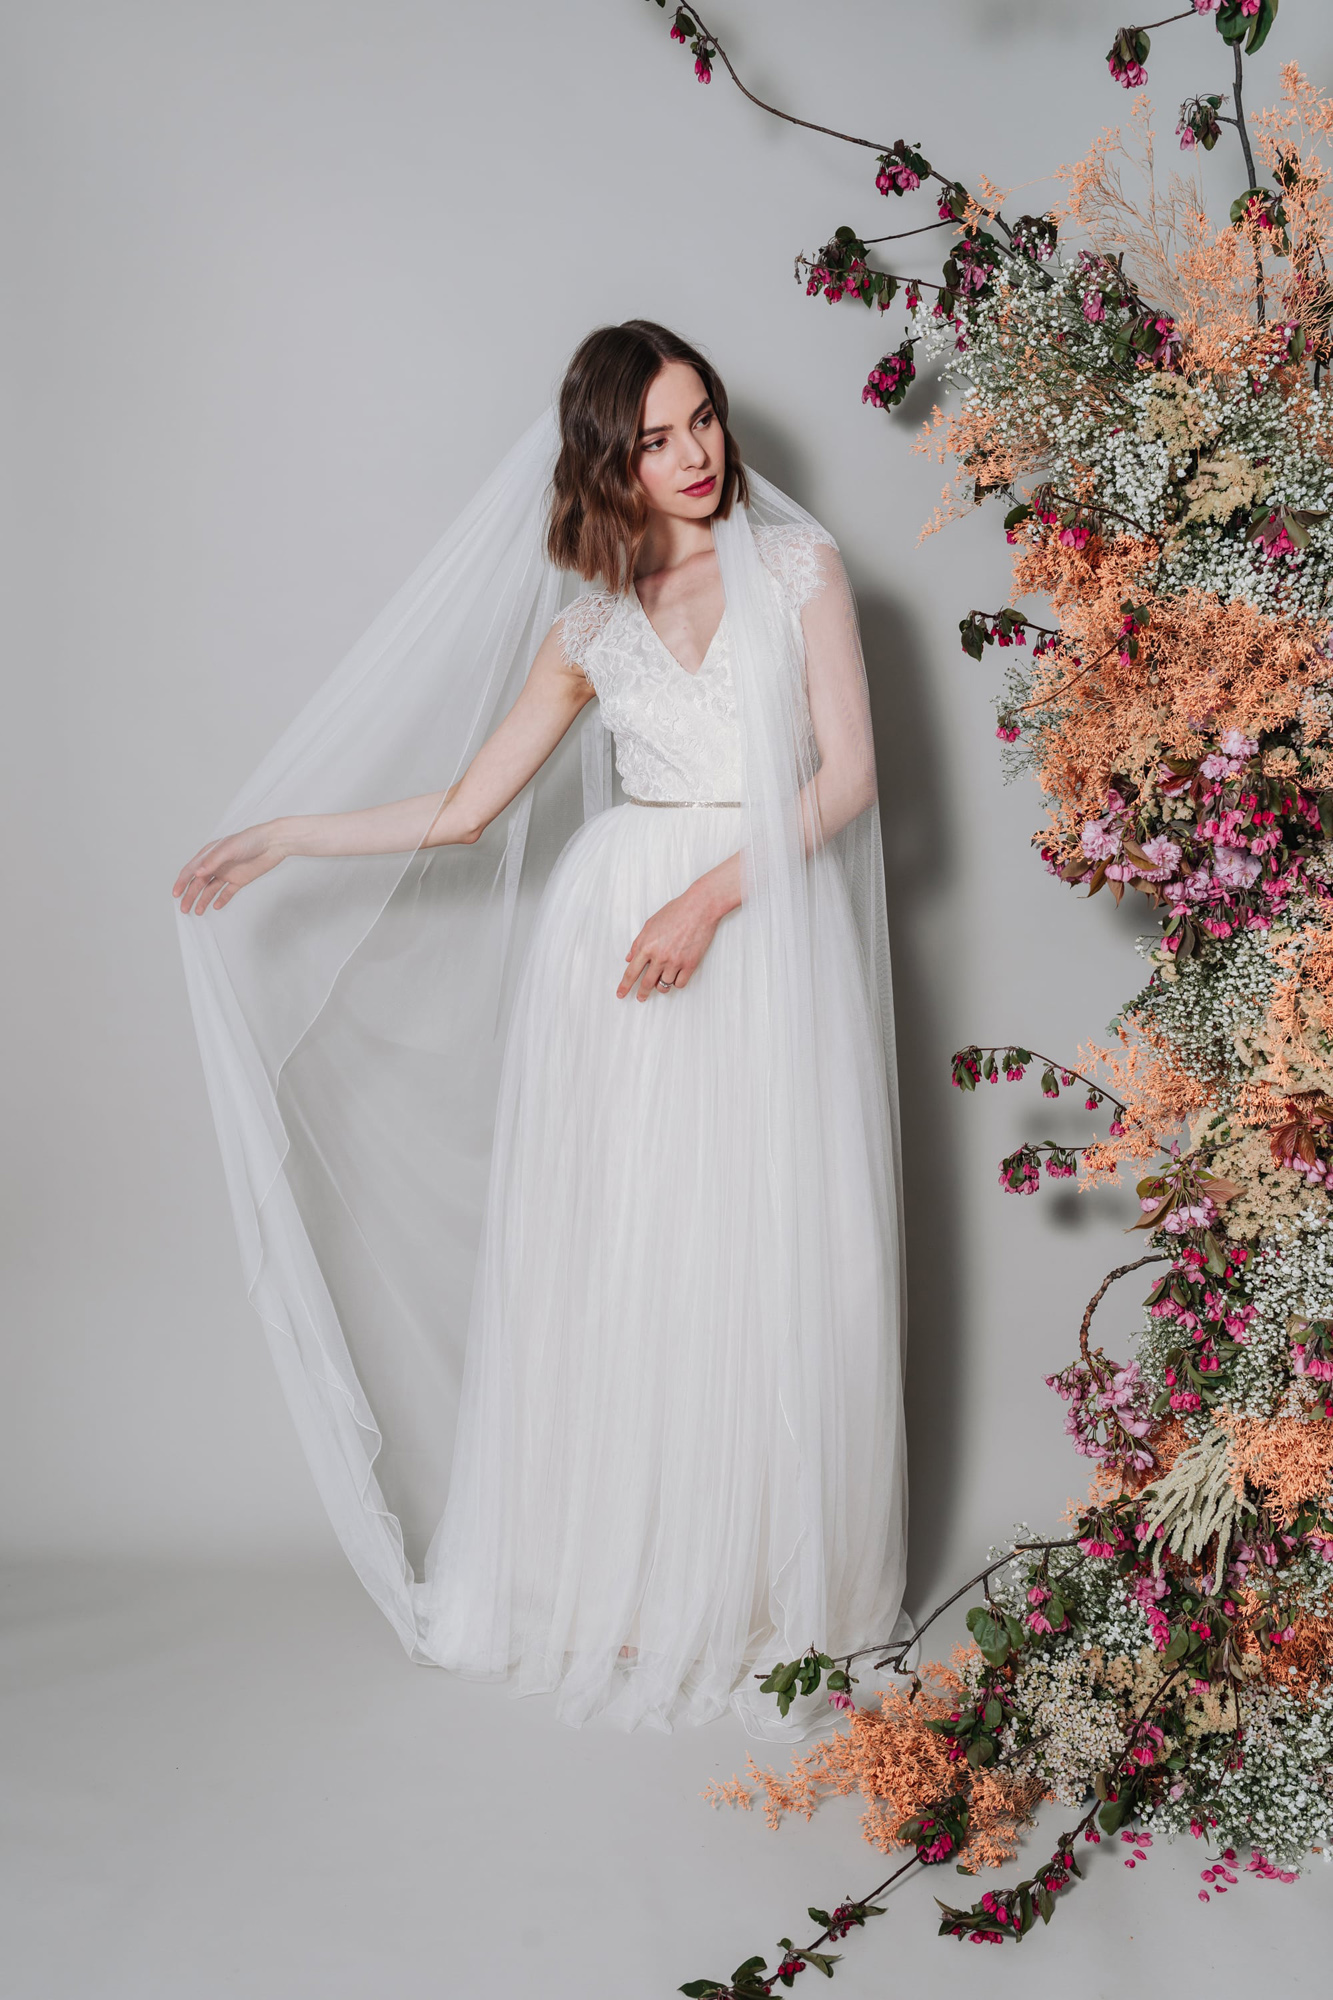 Kate-Beaumont-Sheffield-Mimosa-Lace-Tulle-Bohemian-Wedding-Gown-17.jpg